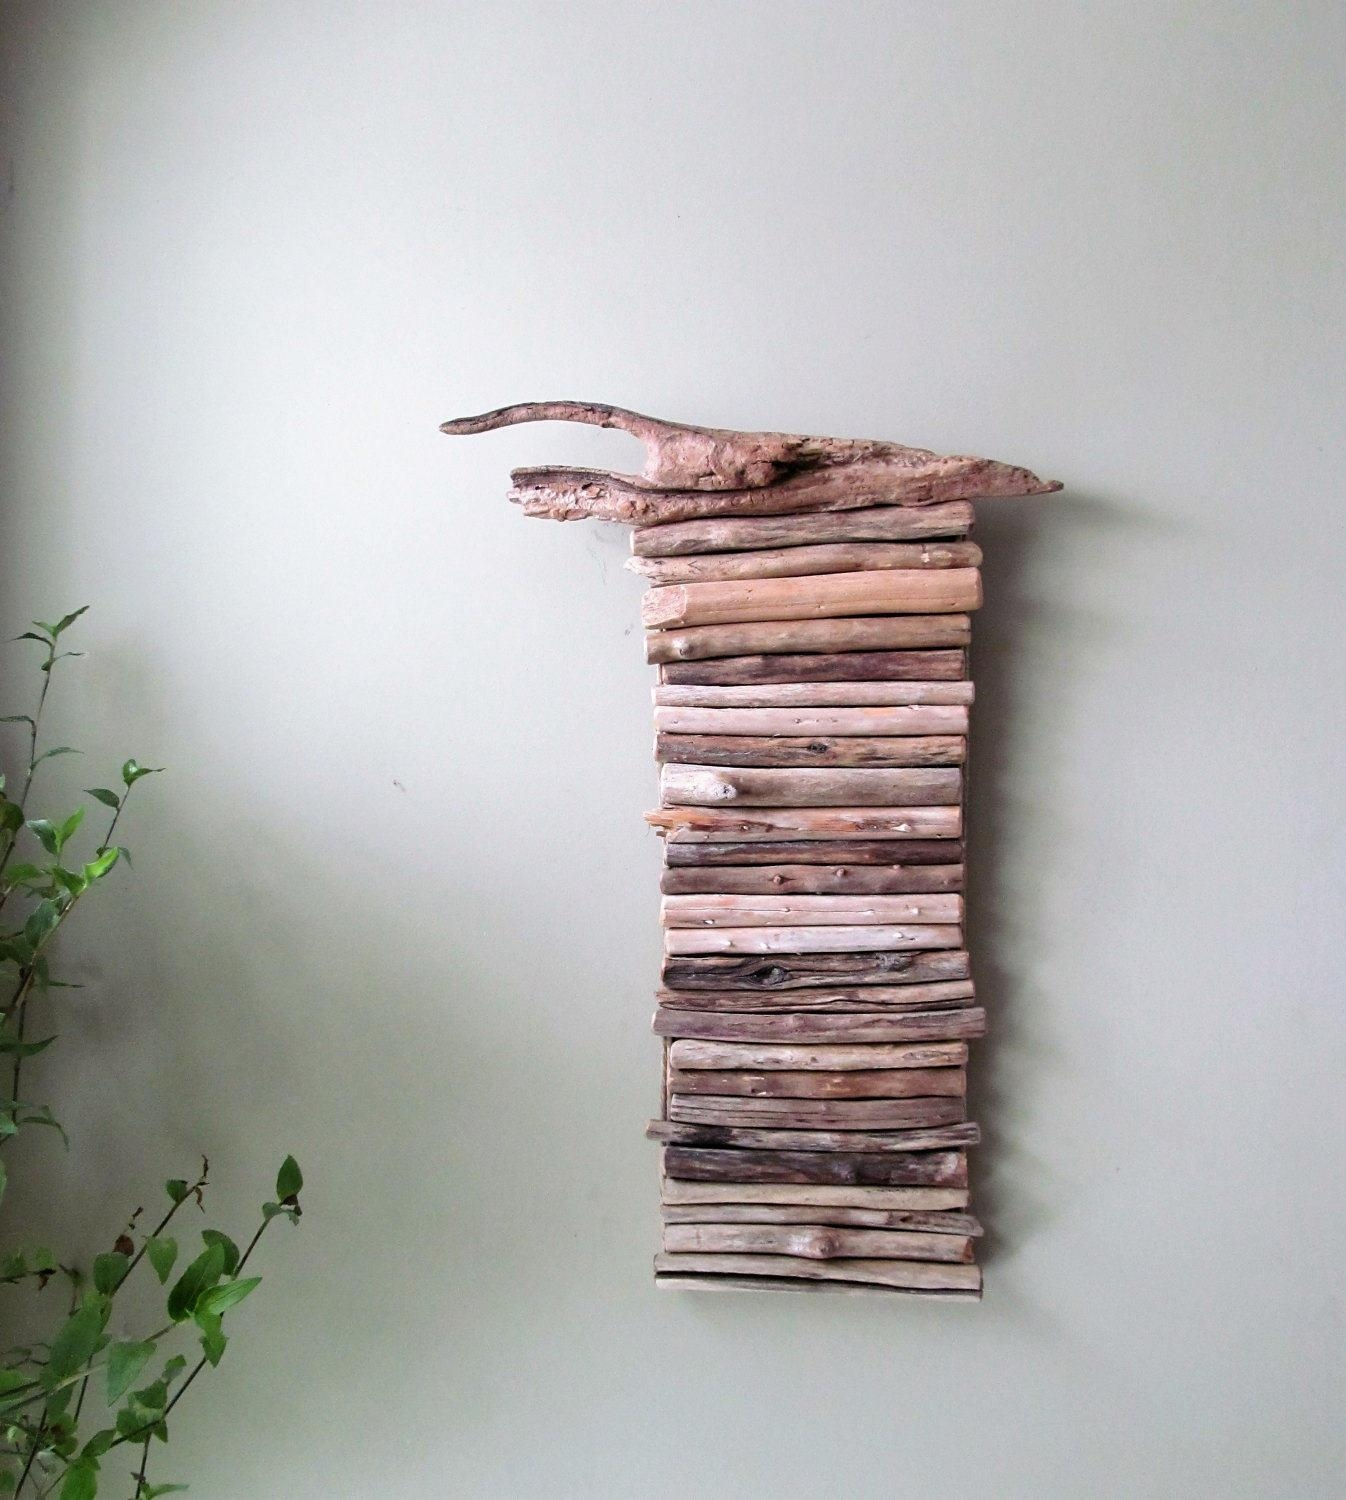 Trend Large Driftwood Wall Art 27 For Your Image With Large Regarding Large Driftwood Wall Art (Image 19 of 20)